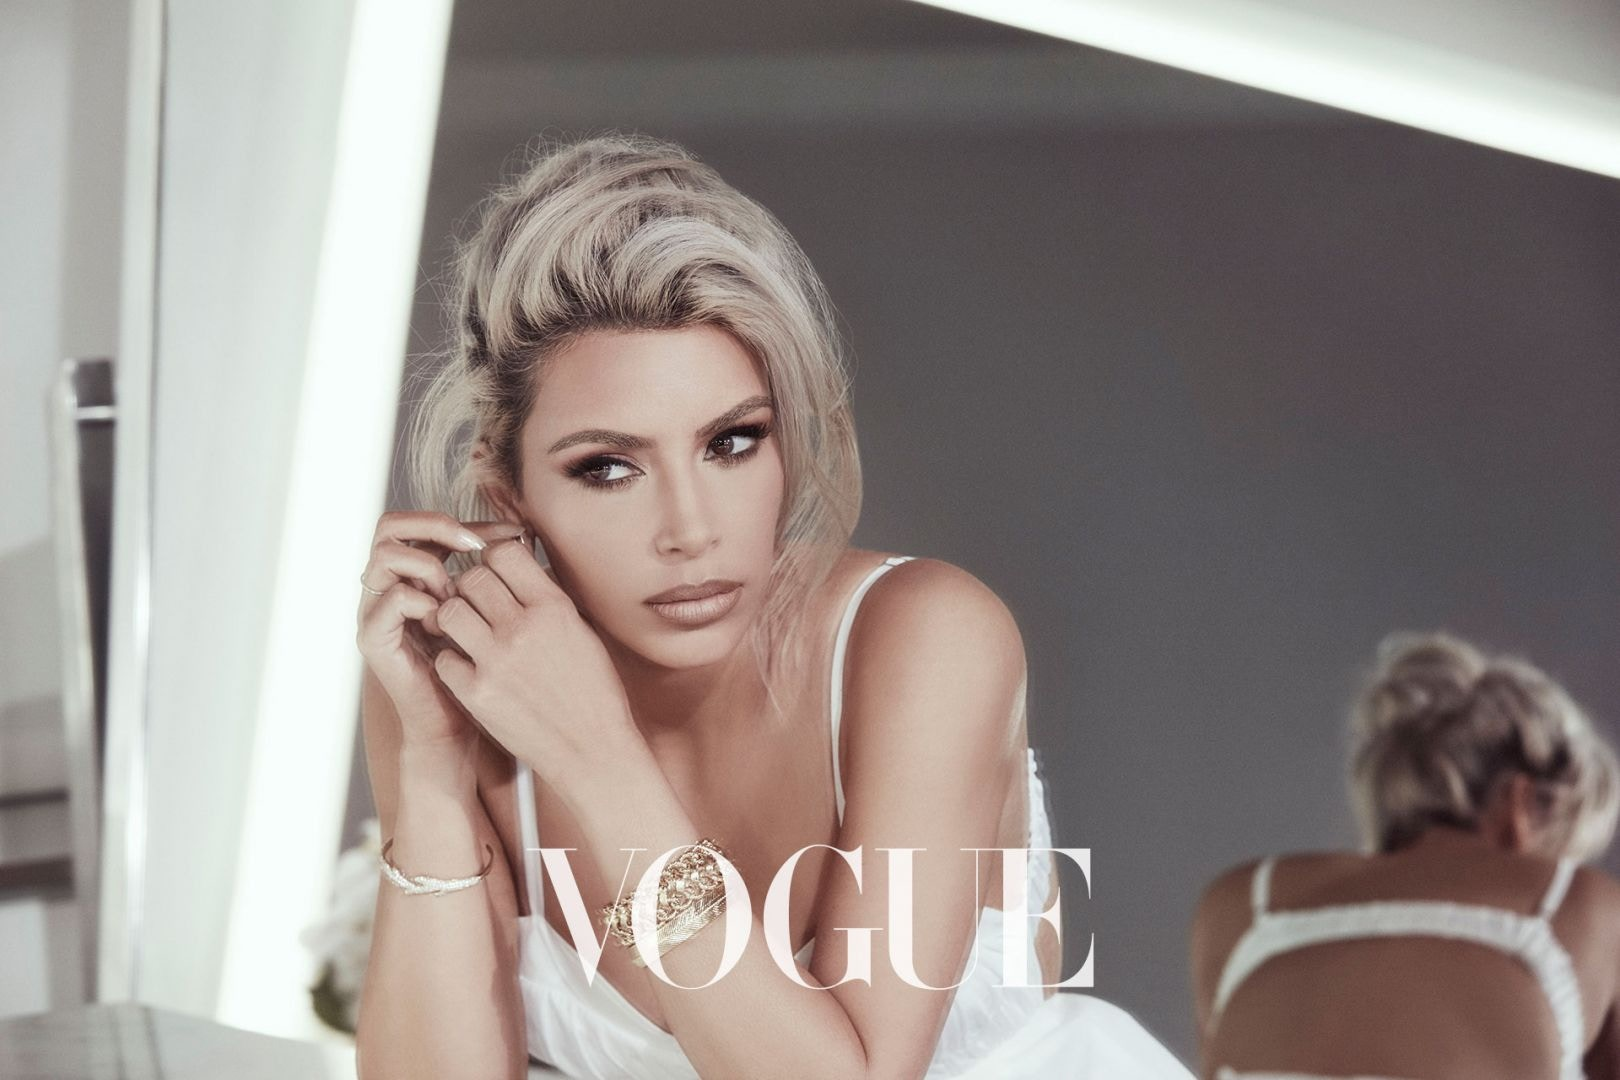 KIM KARDASHIAN Covers Vogue Taiwan, Says She's OBSESSED With Fragrances image